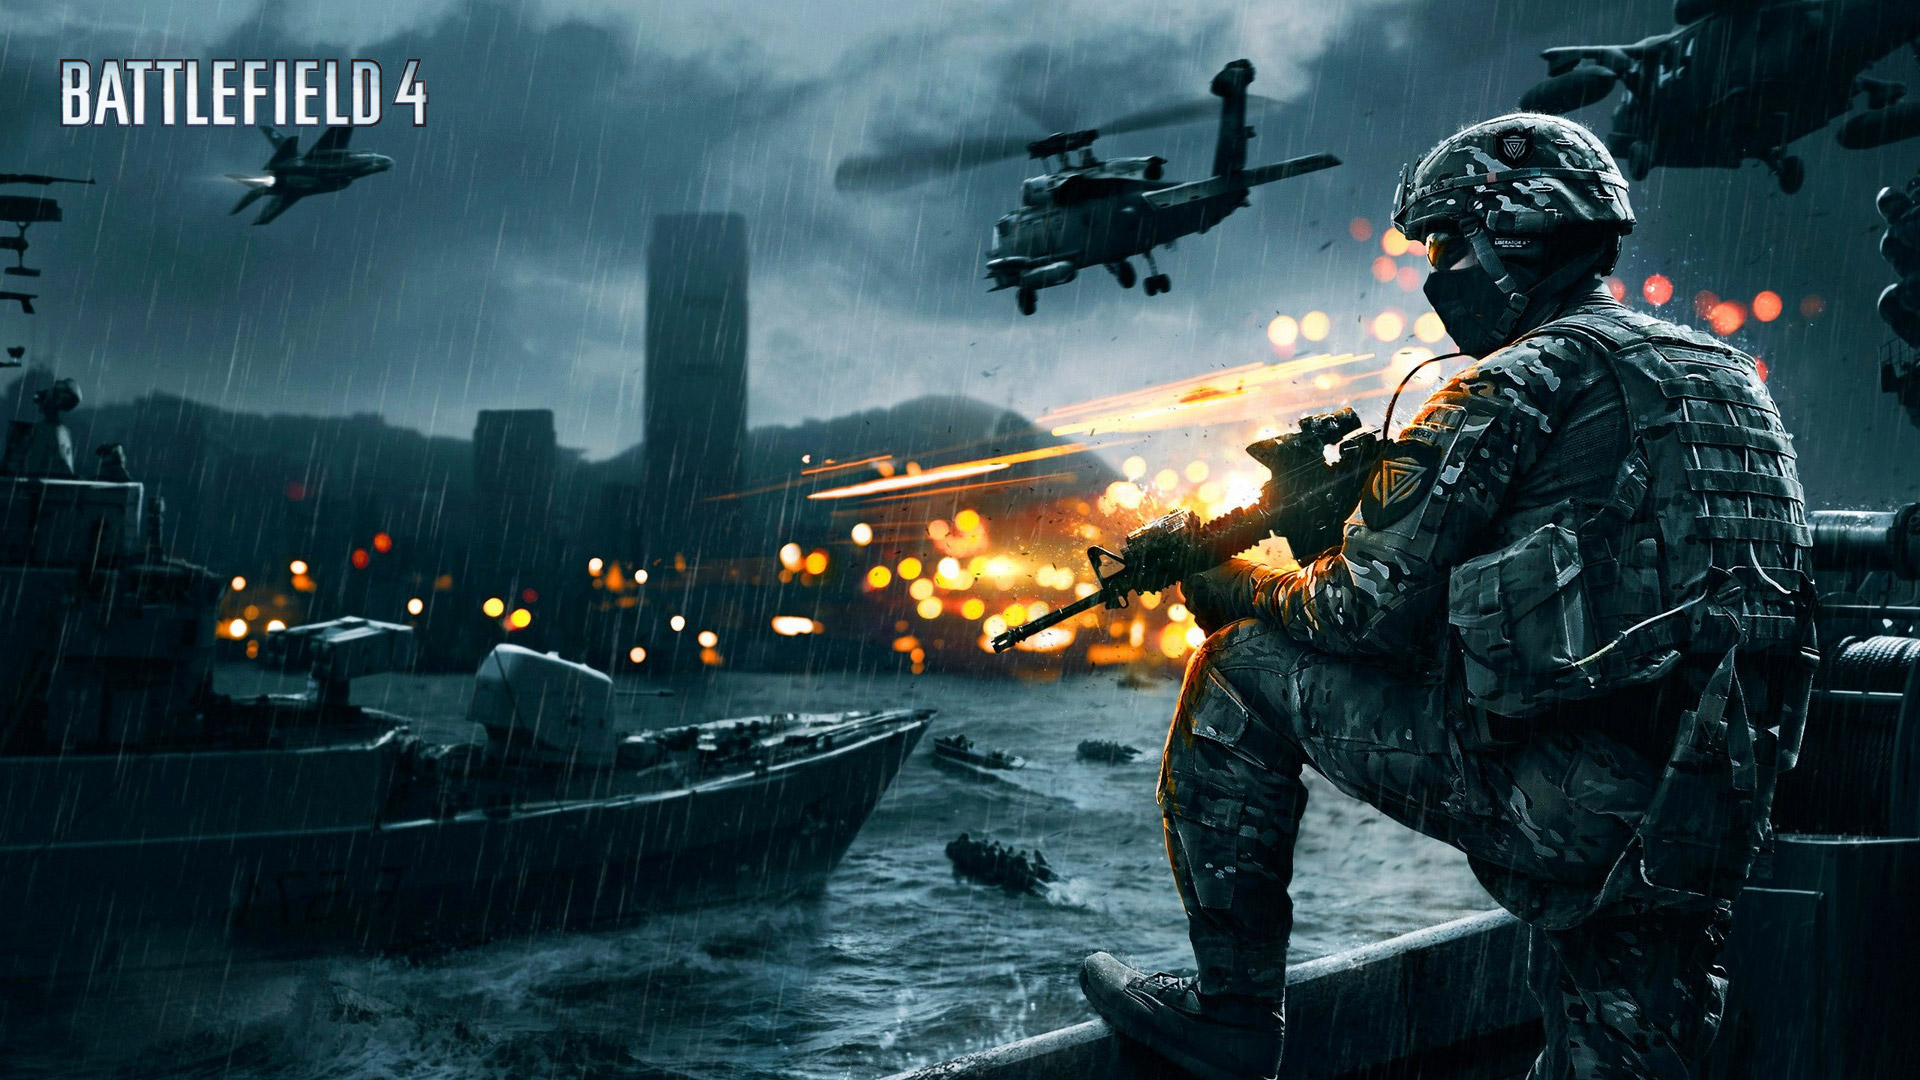 Free Battlefield 4 Wallpaper in 1920x1080